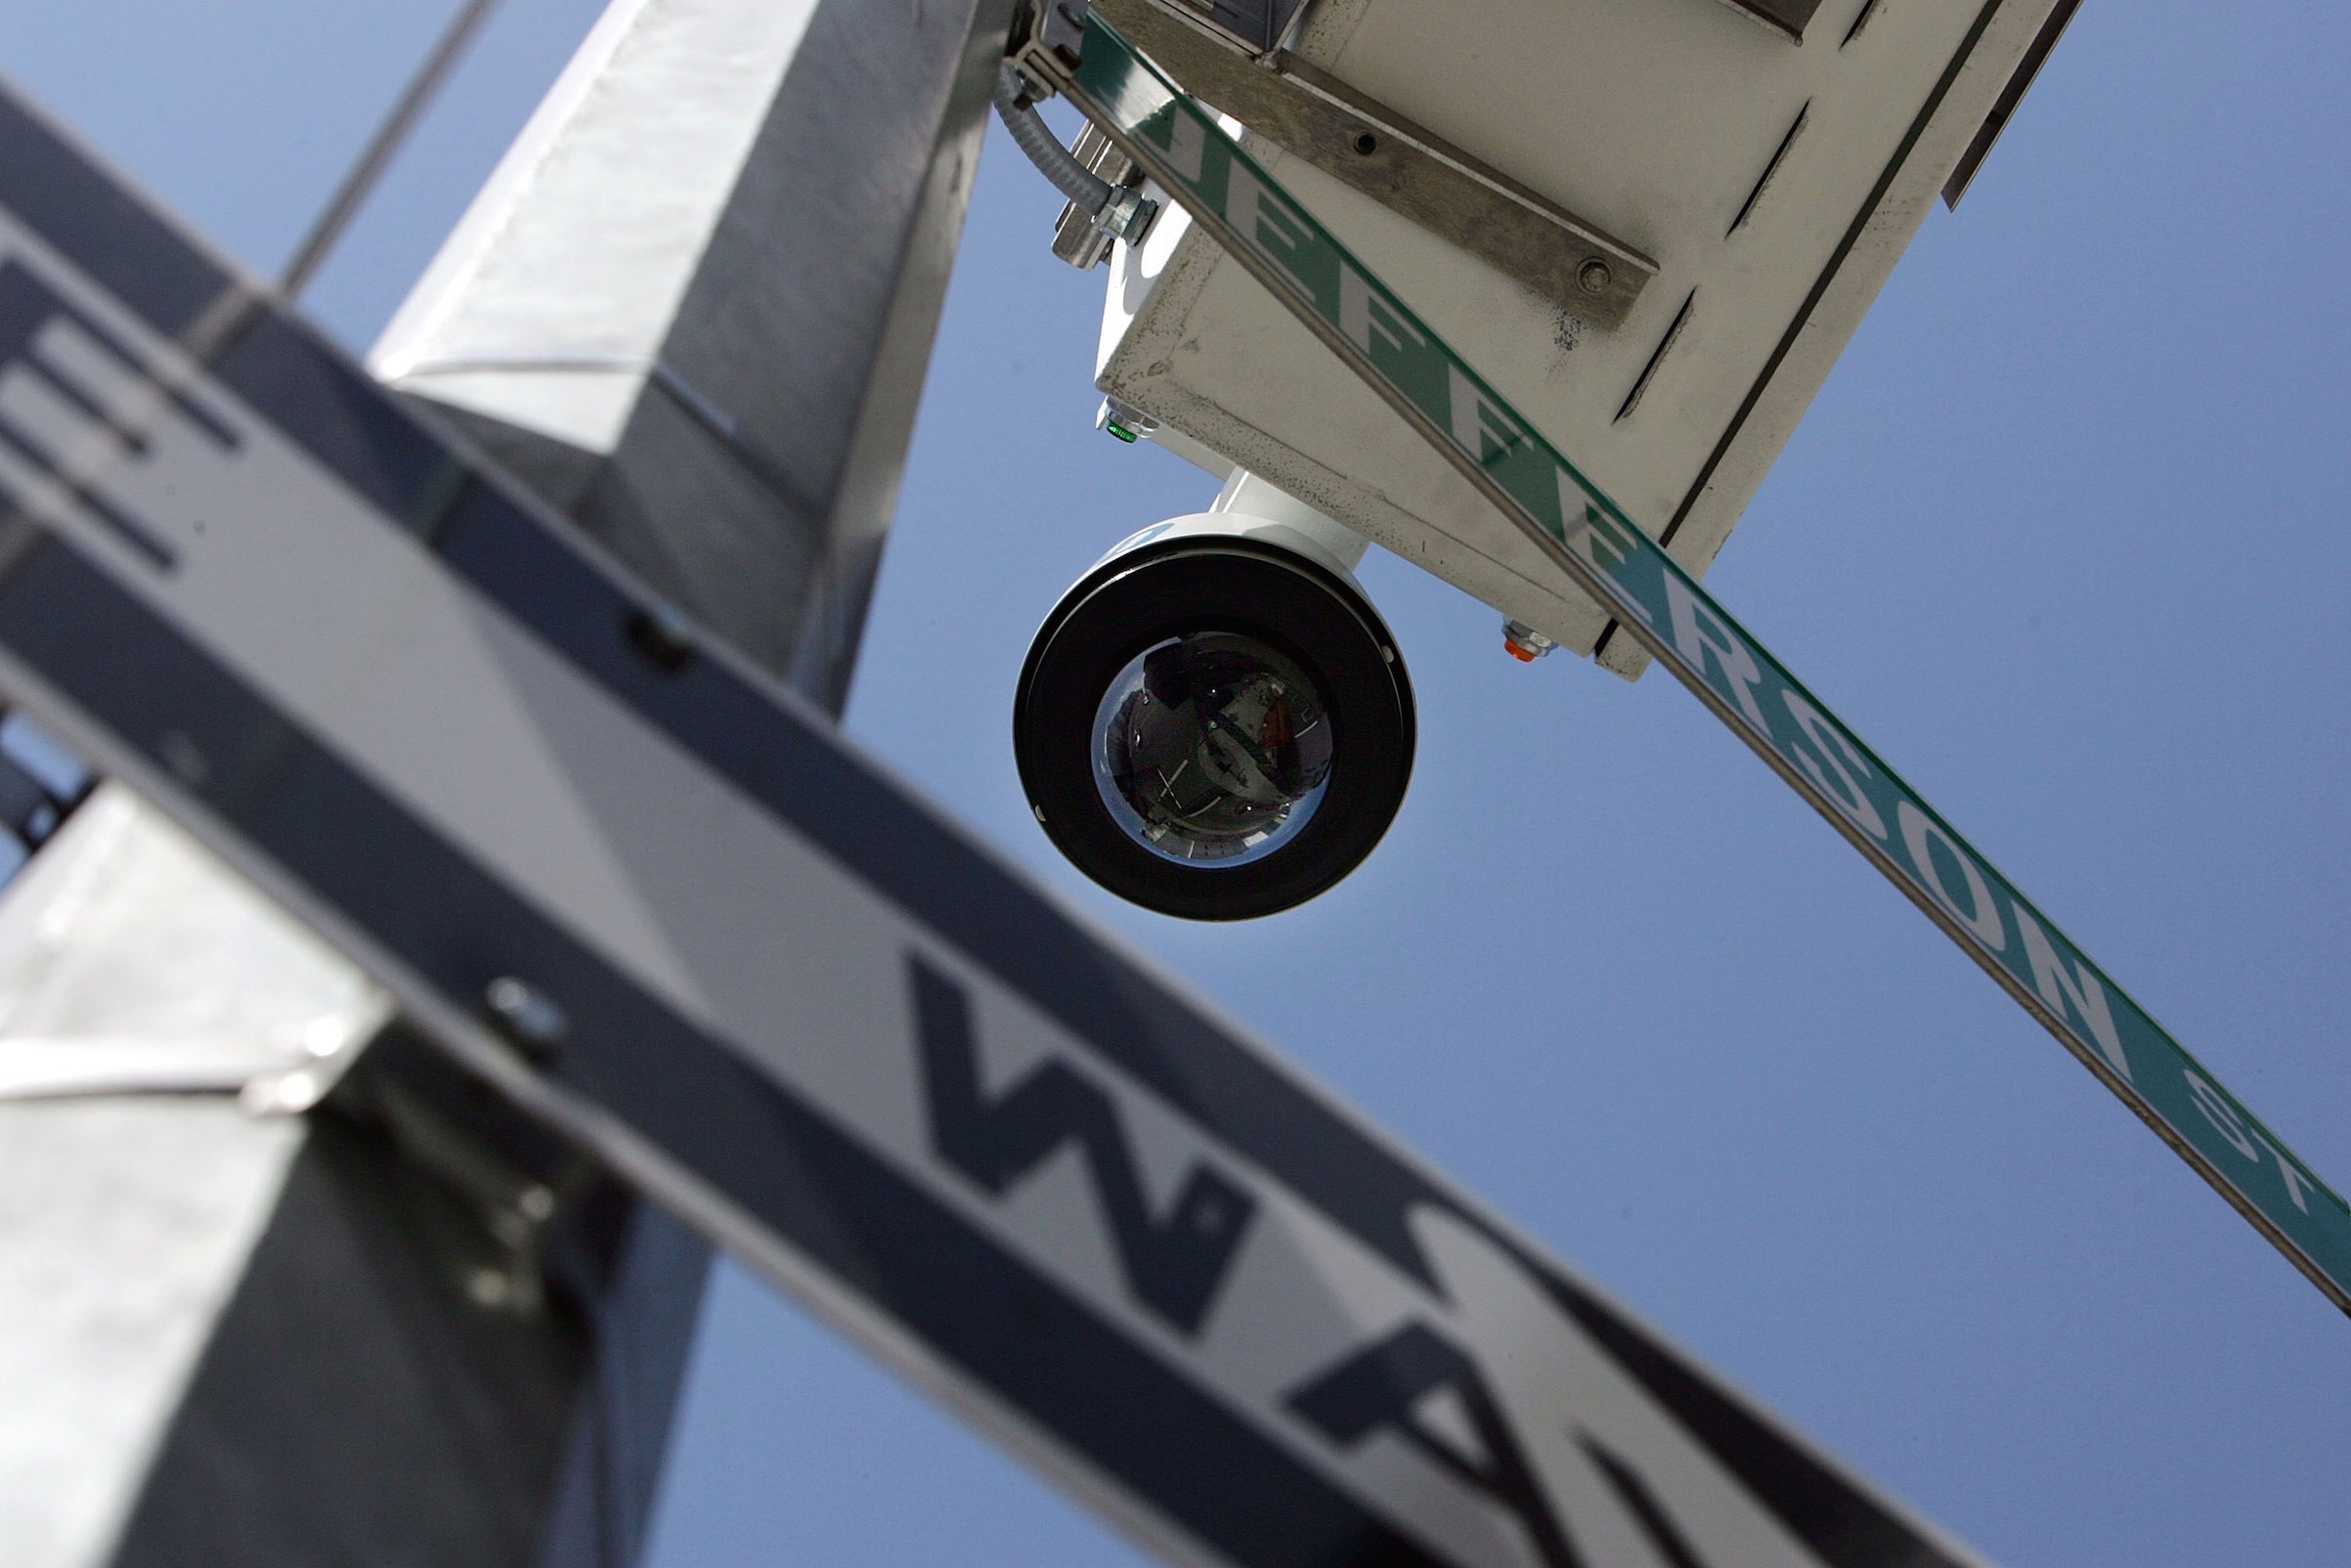 A New York City Police Department wireless video recorder attached to a lamp post is seen on Knickerbocker Avenue April 17, 2006, in the Brooklyn borough of New York City. The set of cameras were the first installation of 500 high-tech security cameras around the city.